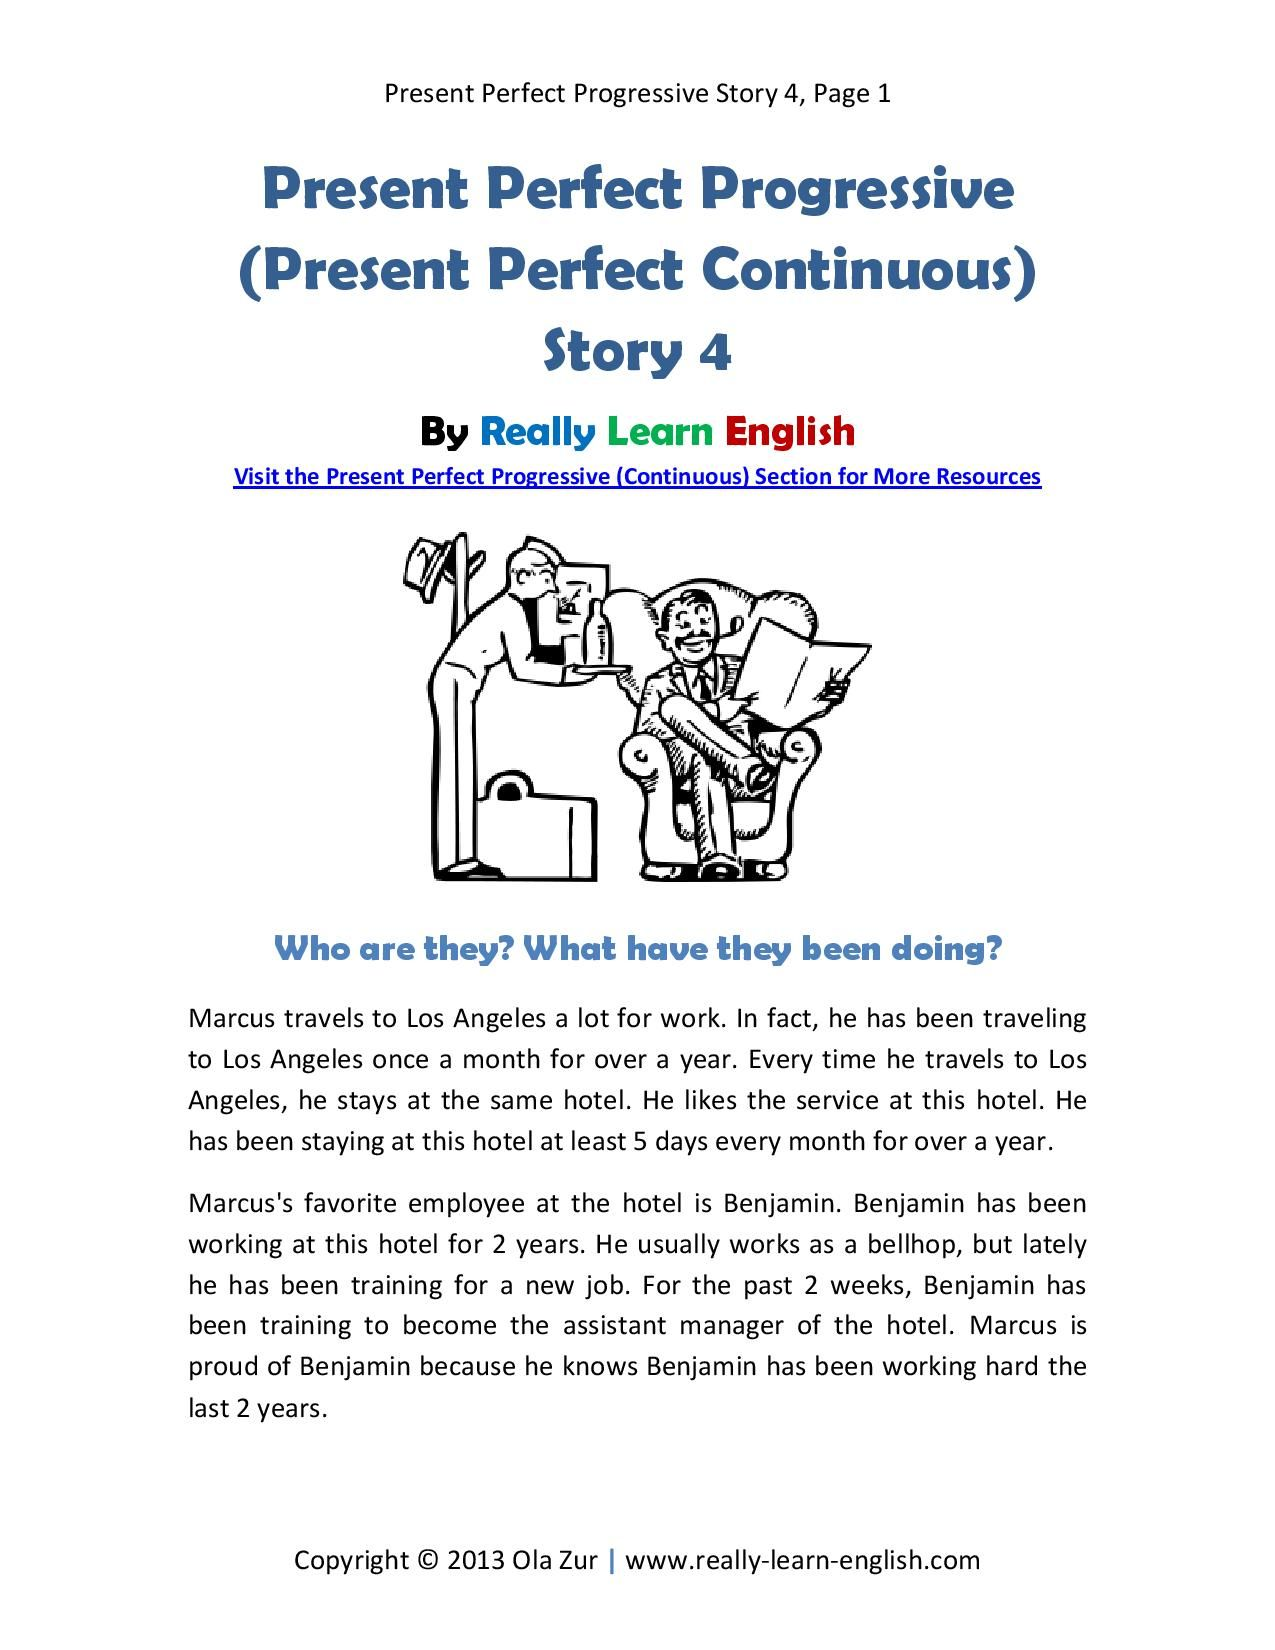 worksheet Spanish Present Progressive Worksheet practice the english simple present tense with this printable story and worksheet to perfect progressive continuous easy lesson planning for b